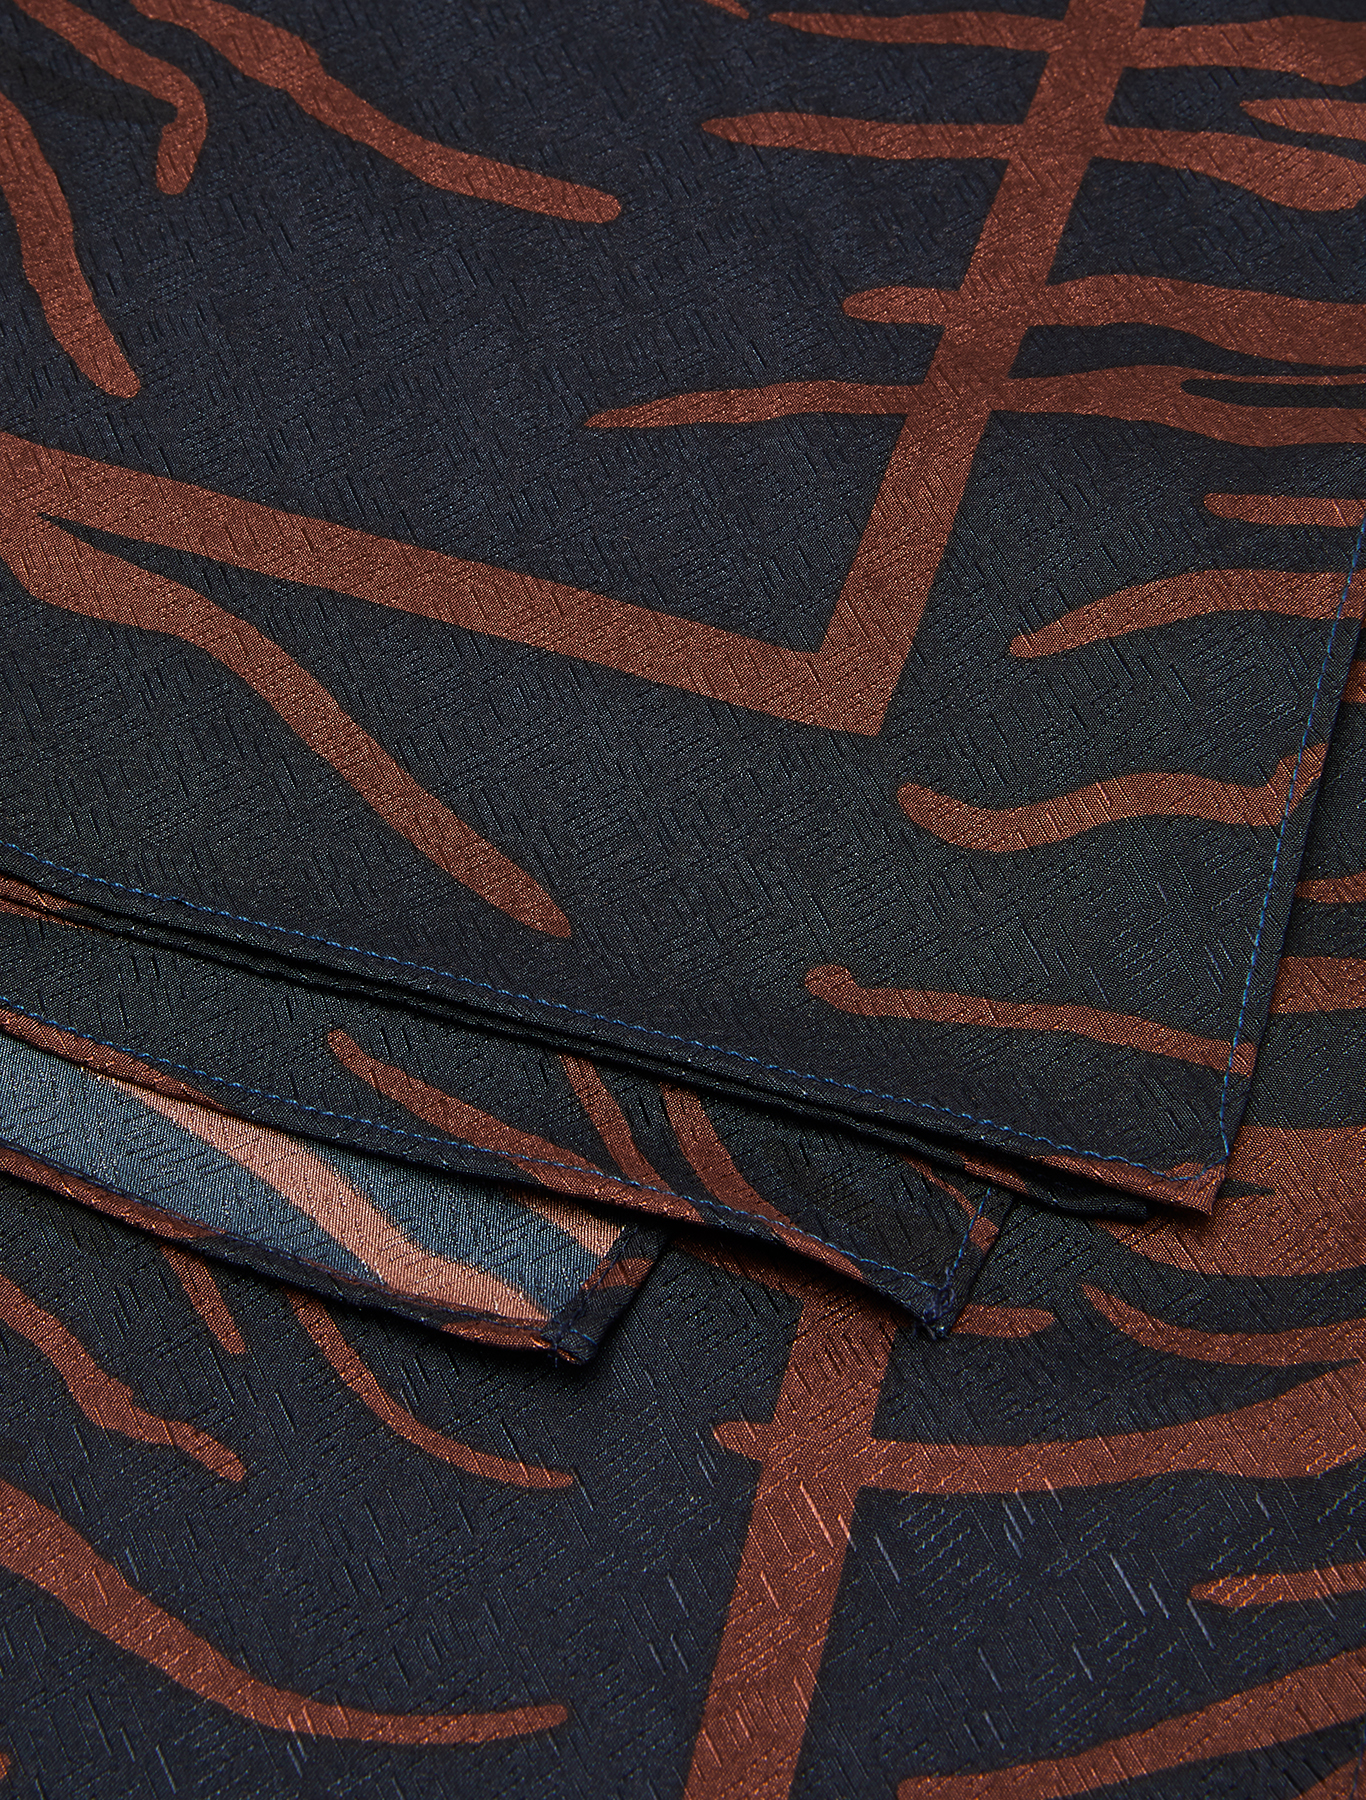 Printed jacquard stole - brown - pennyblack